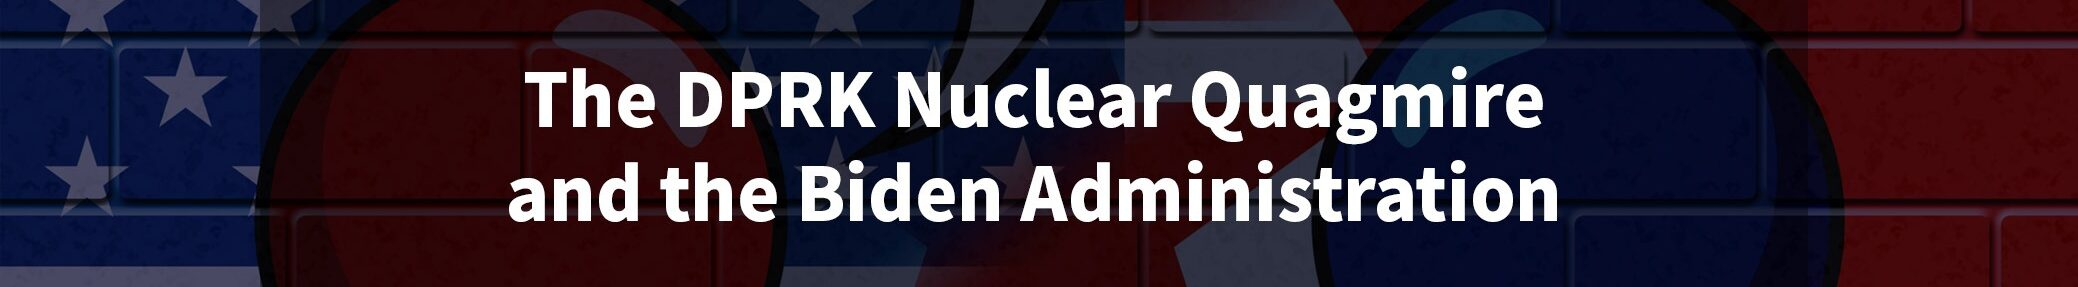 The DPRK Nuclear Quagmire and the Biden Administration